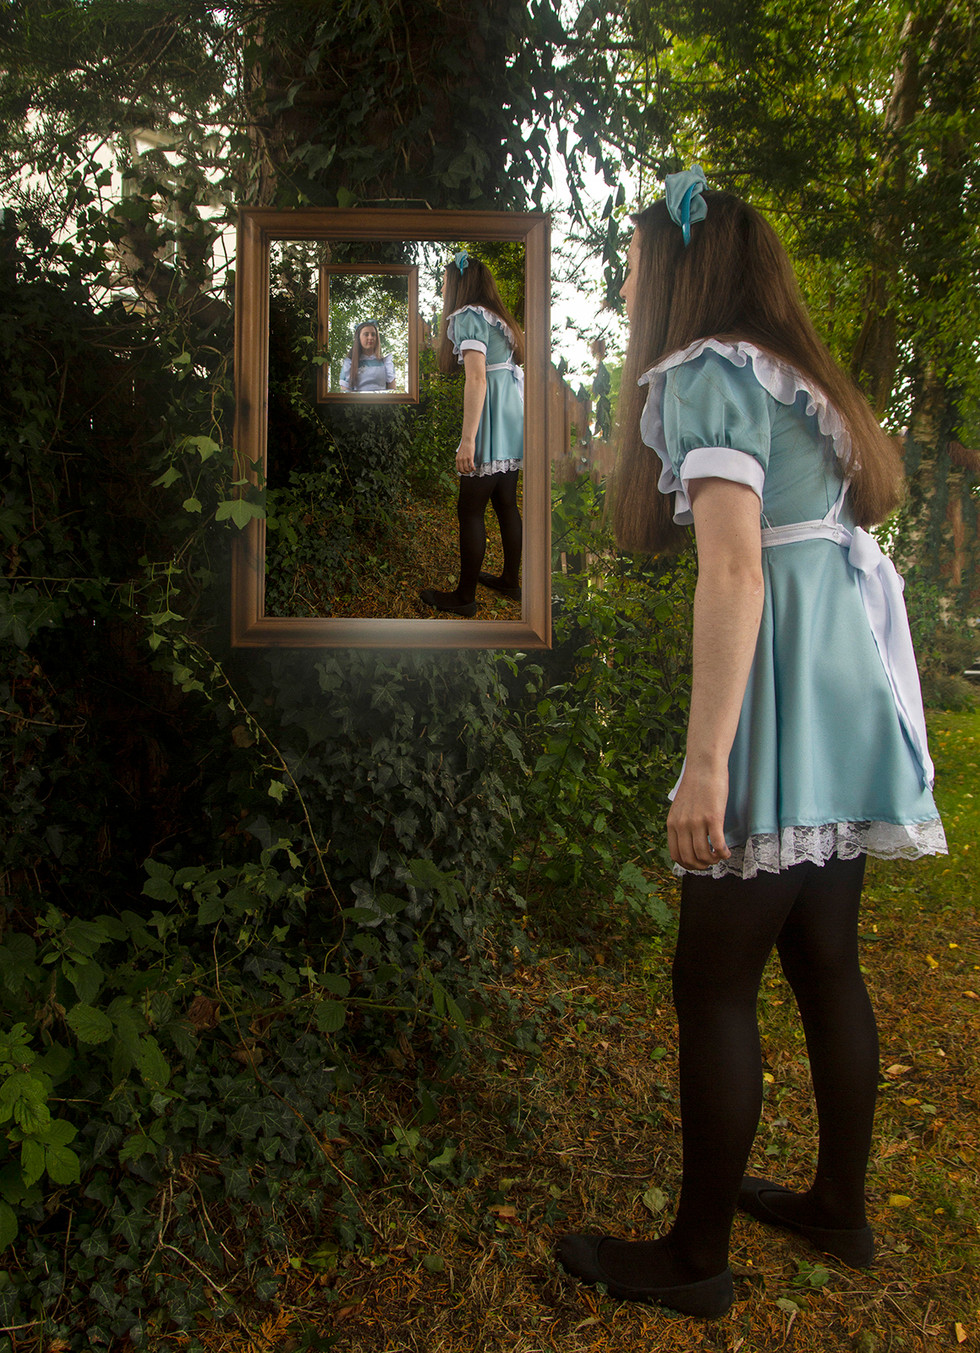 COLOUR - Through the Looking Glass - Lewis Carroll  by F Doherty (13 marks)